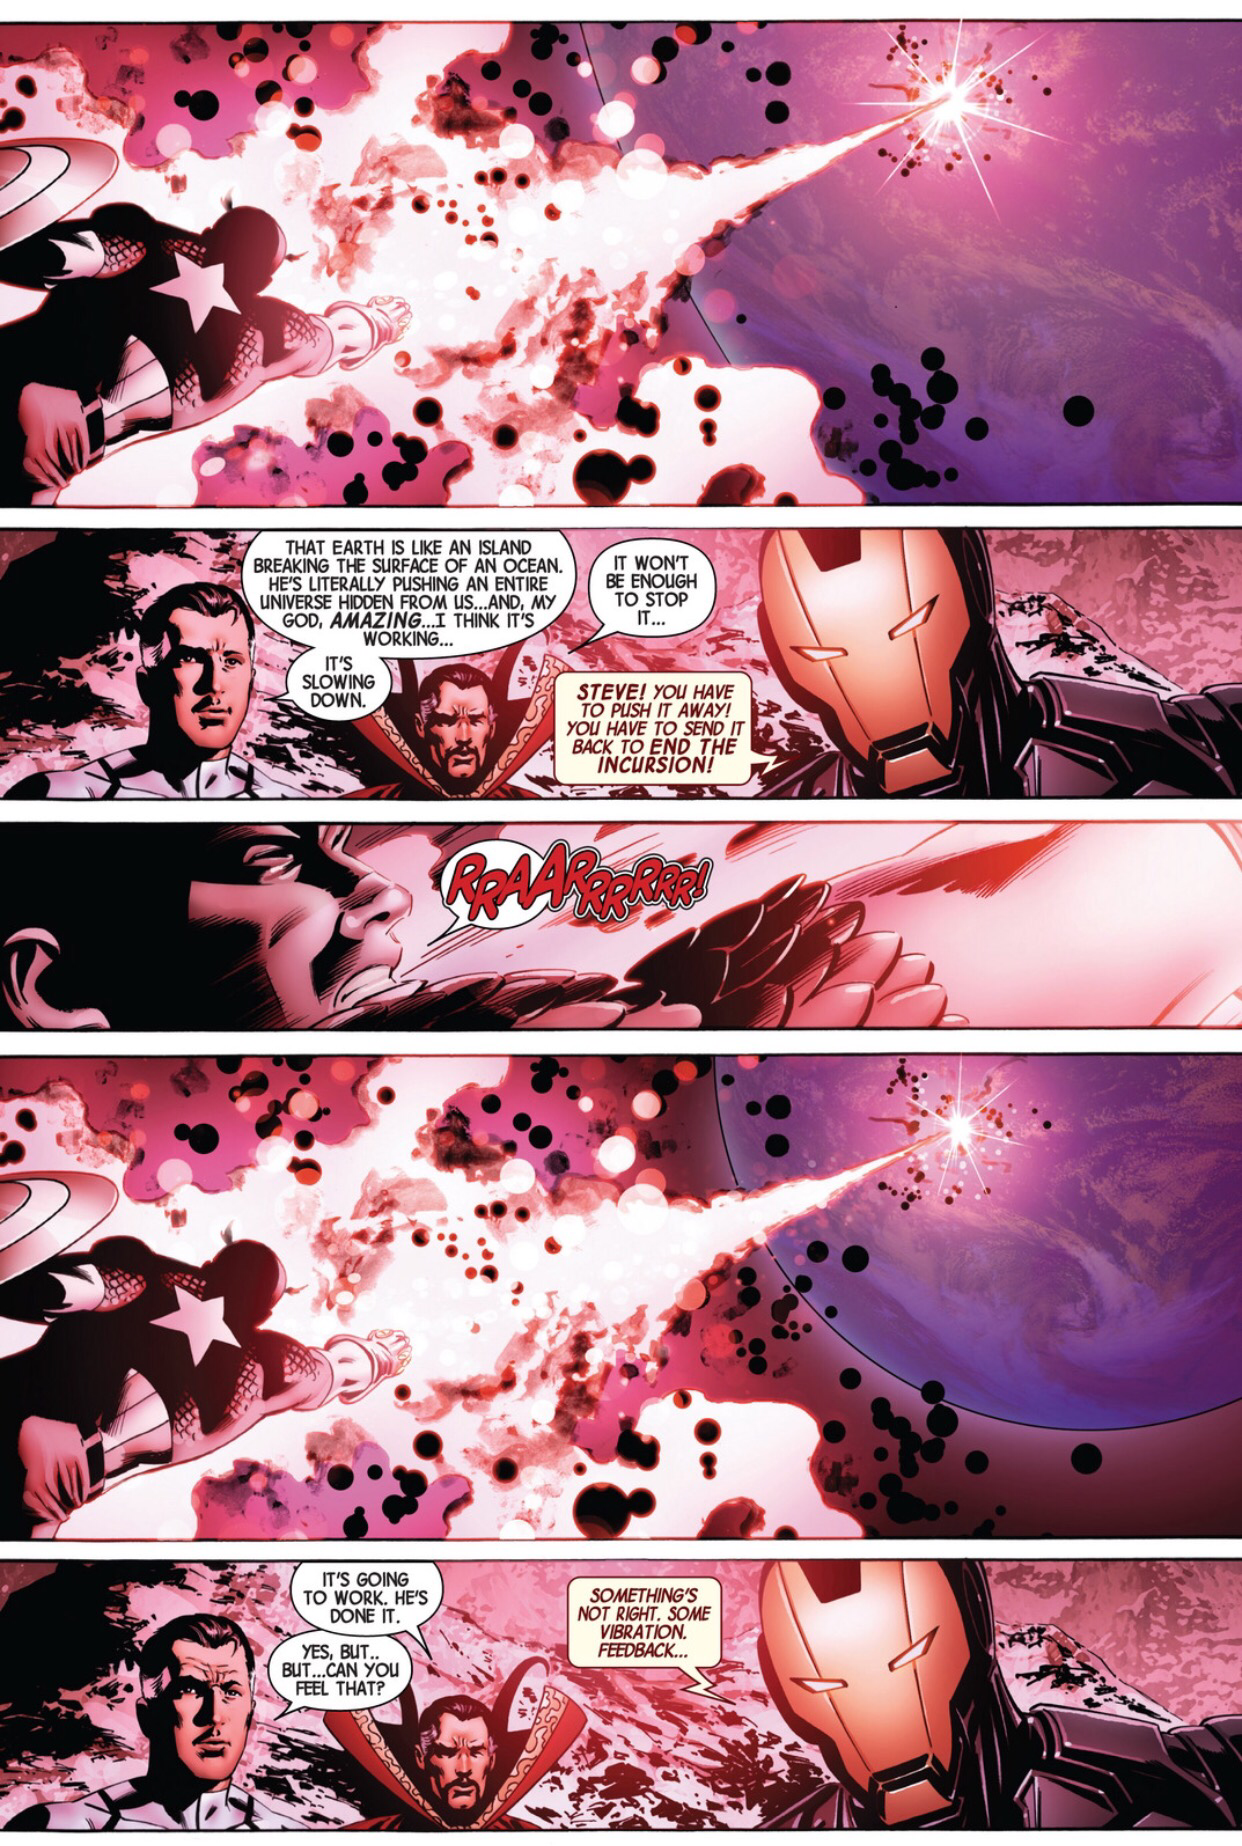 Captain America uses the infinity guantlet